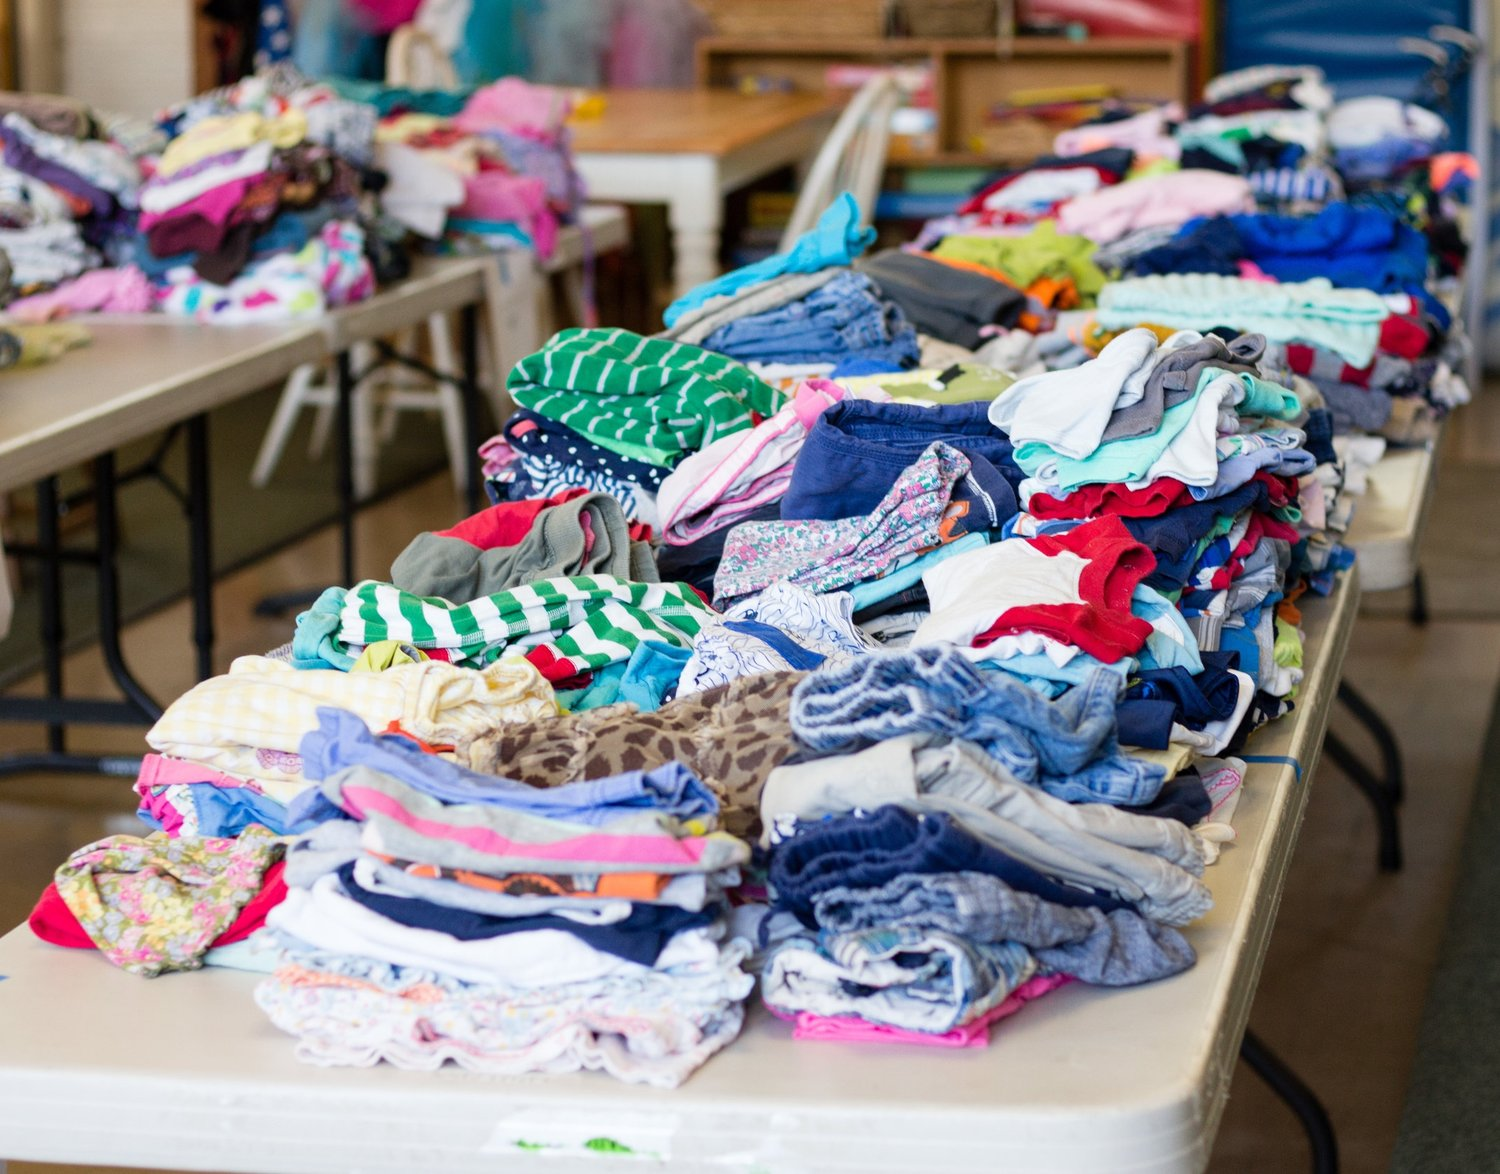 29f43bd0448 Do you have a growing pile of outgrown children s clothes in decent  condition  Now that the weather is changing